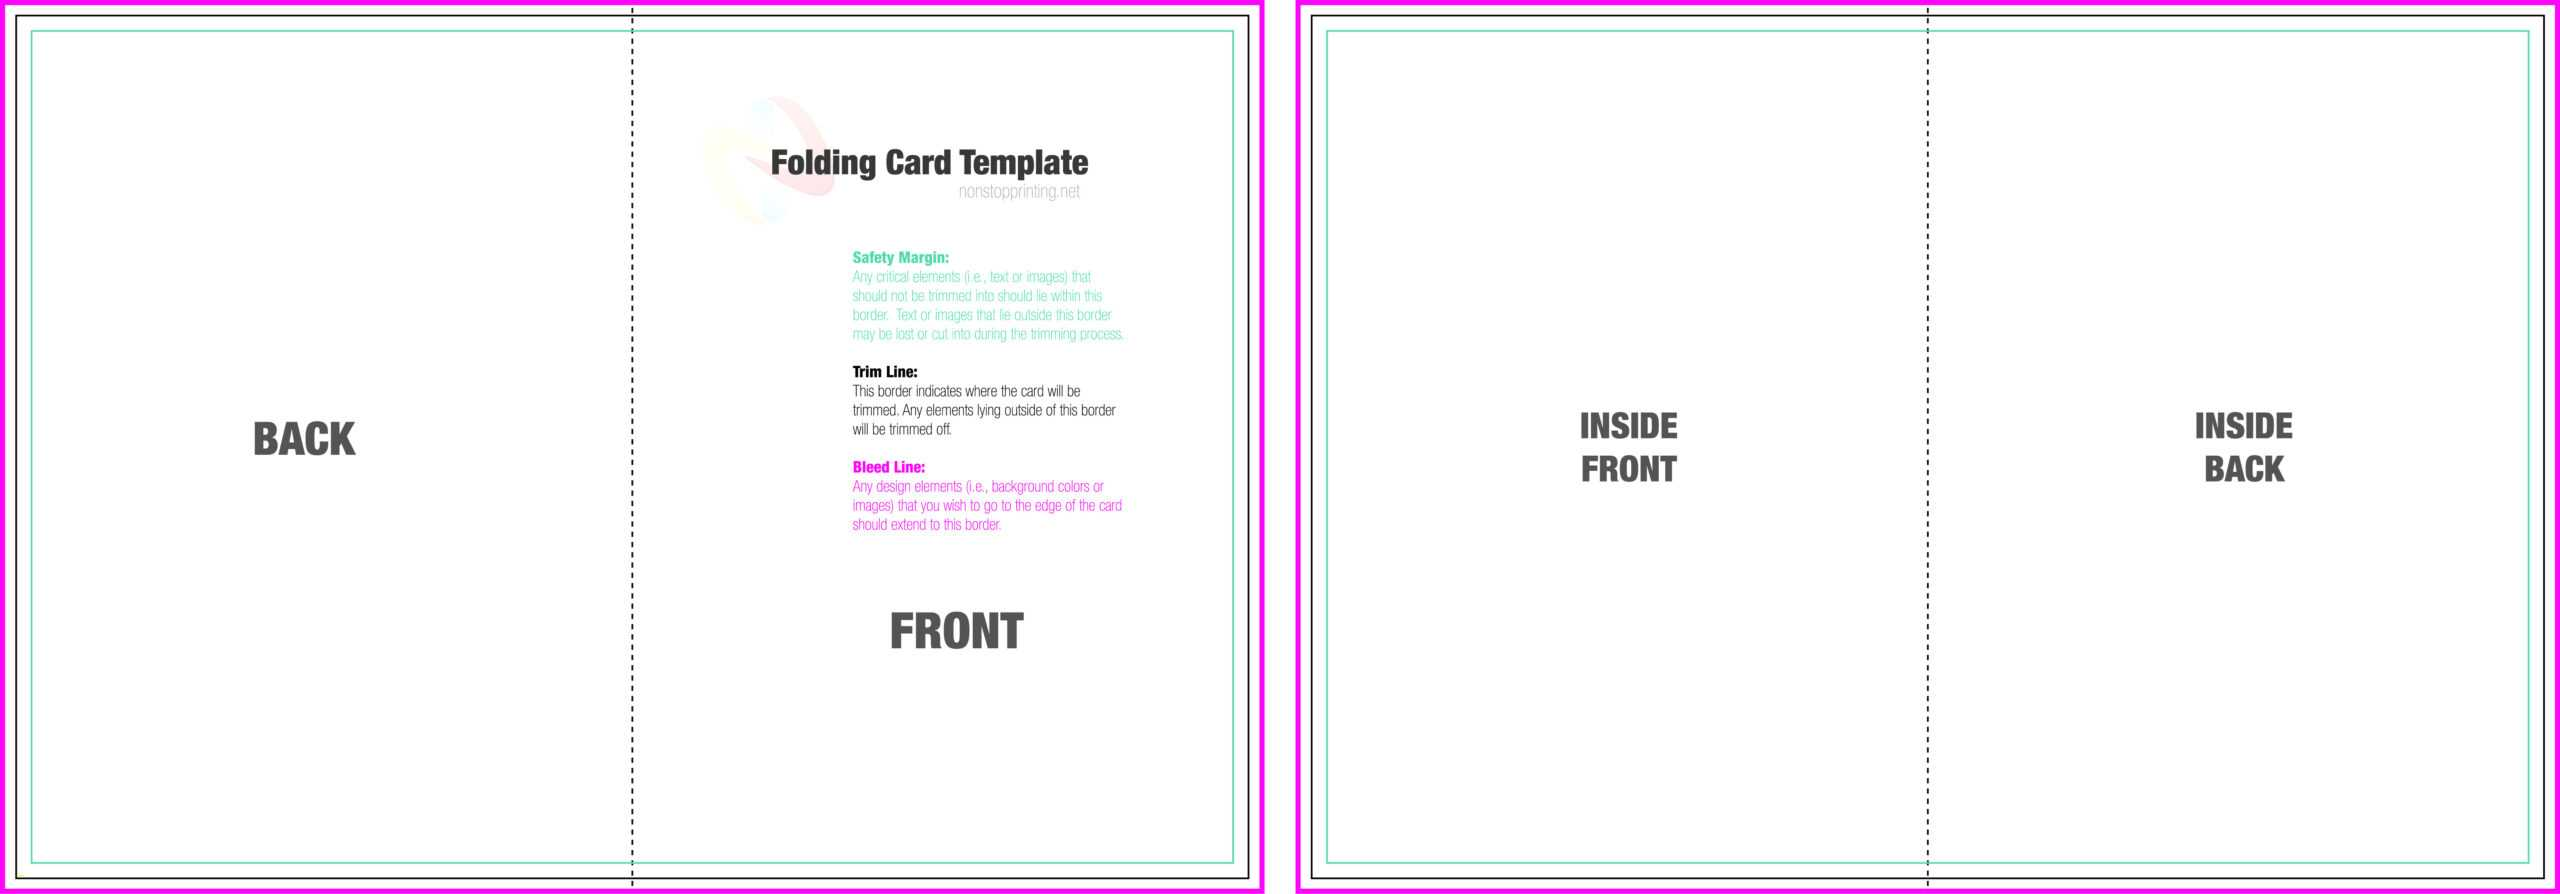 011 Template Ideas Birthday Card Word Quarter Fold Document For Foldable Card Template Word